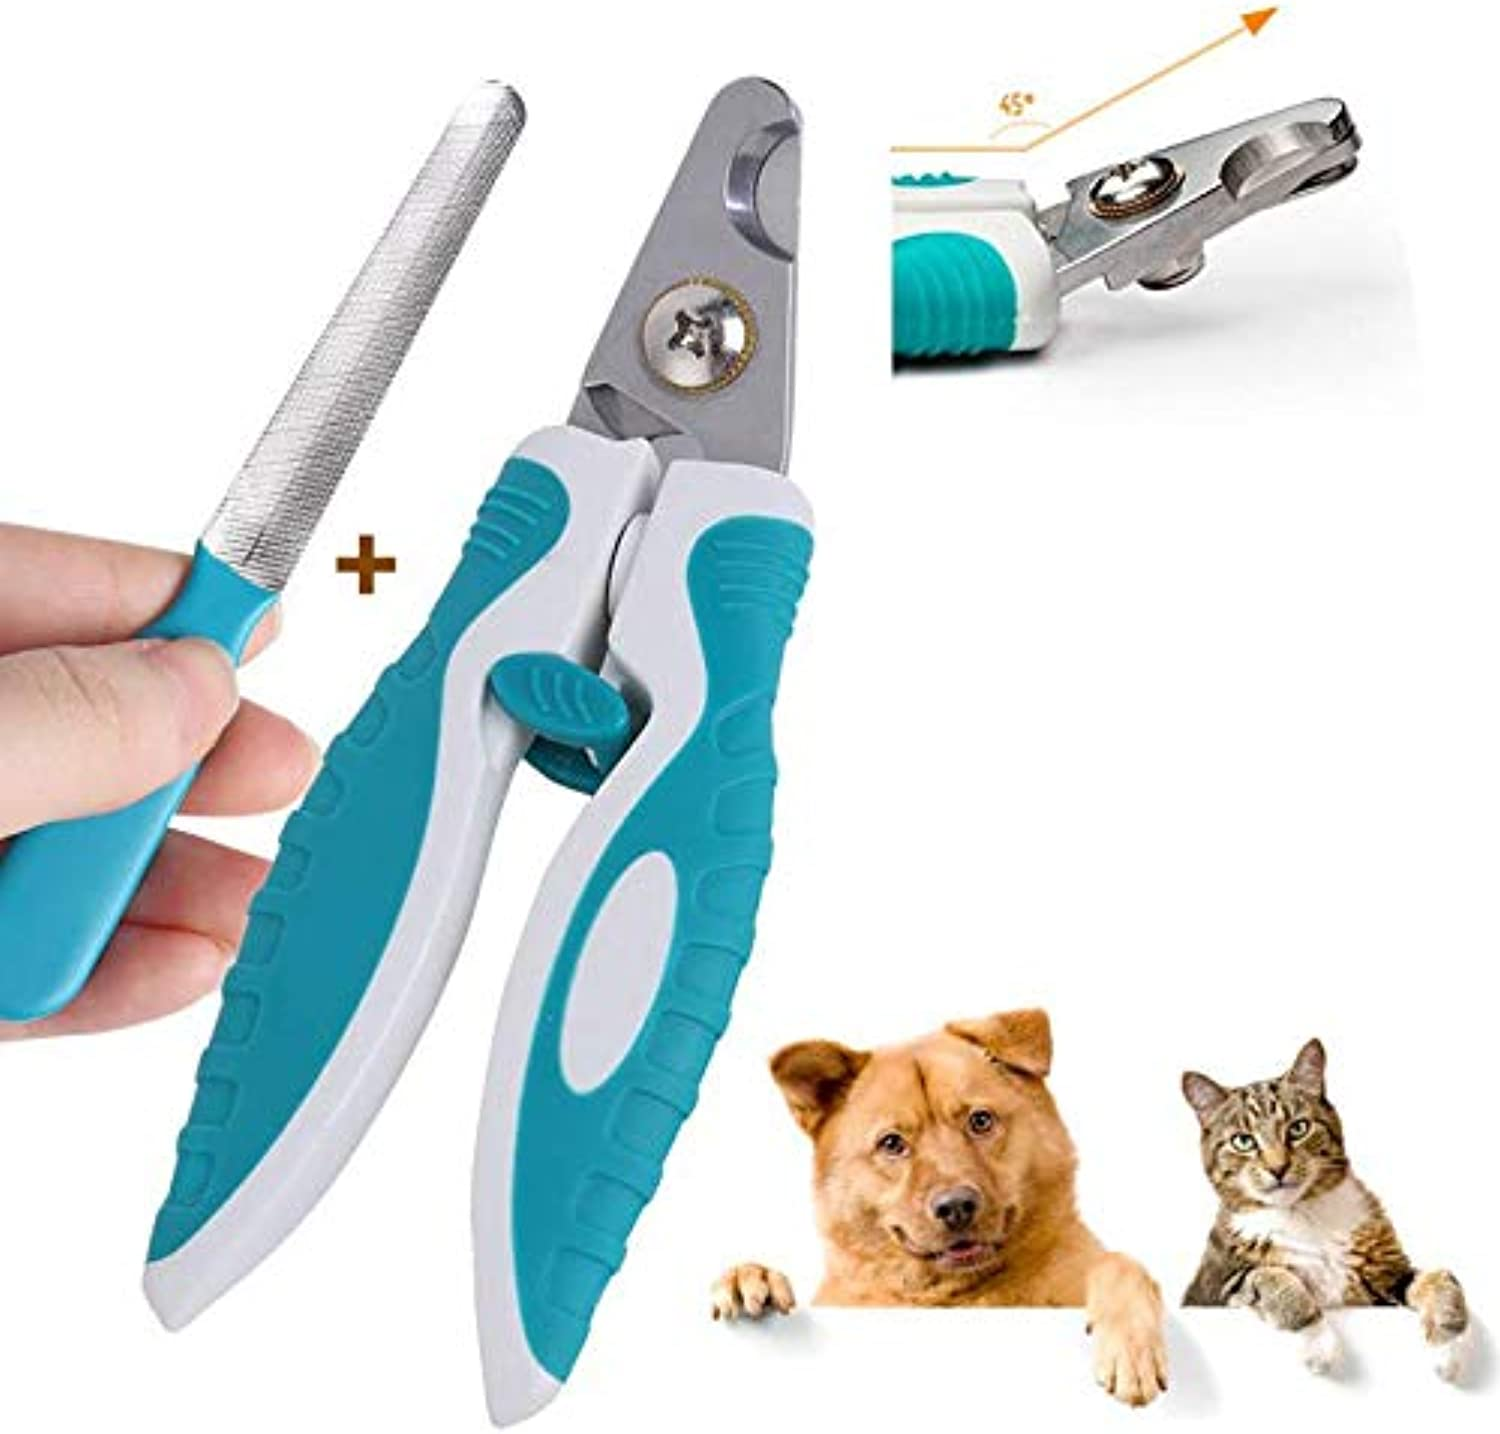 Pet Nail Clipper, Stainless Steel Trimmer Professional Beauty Suitable for Medium and Large Dogs and Cats Including Free Nail Files